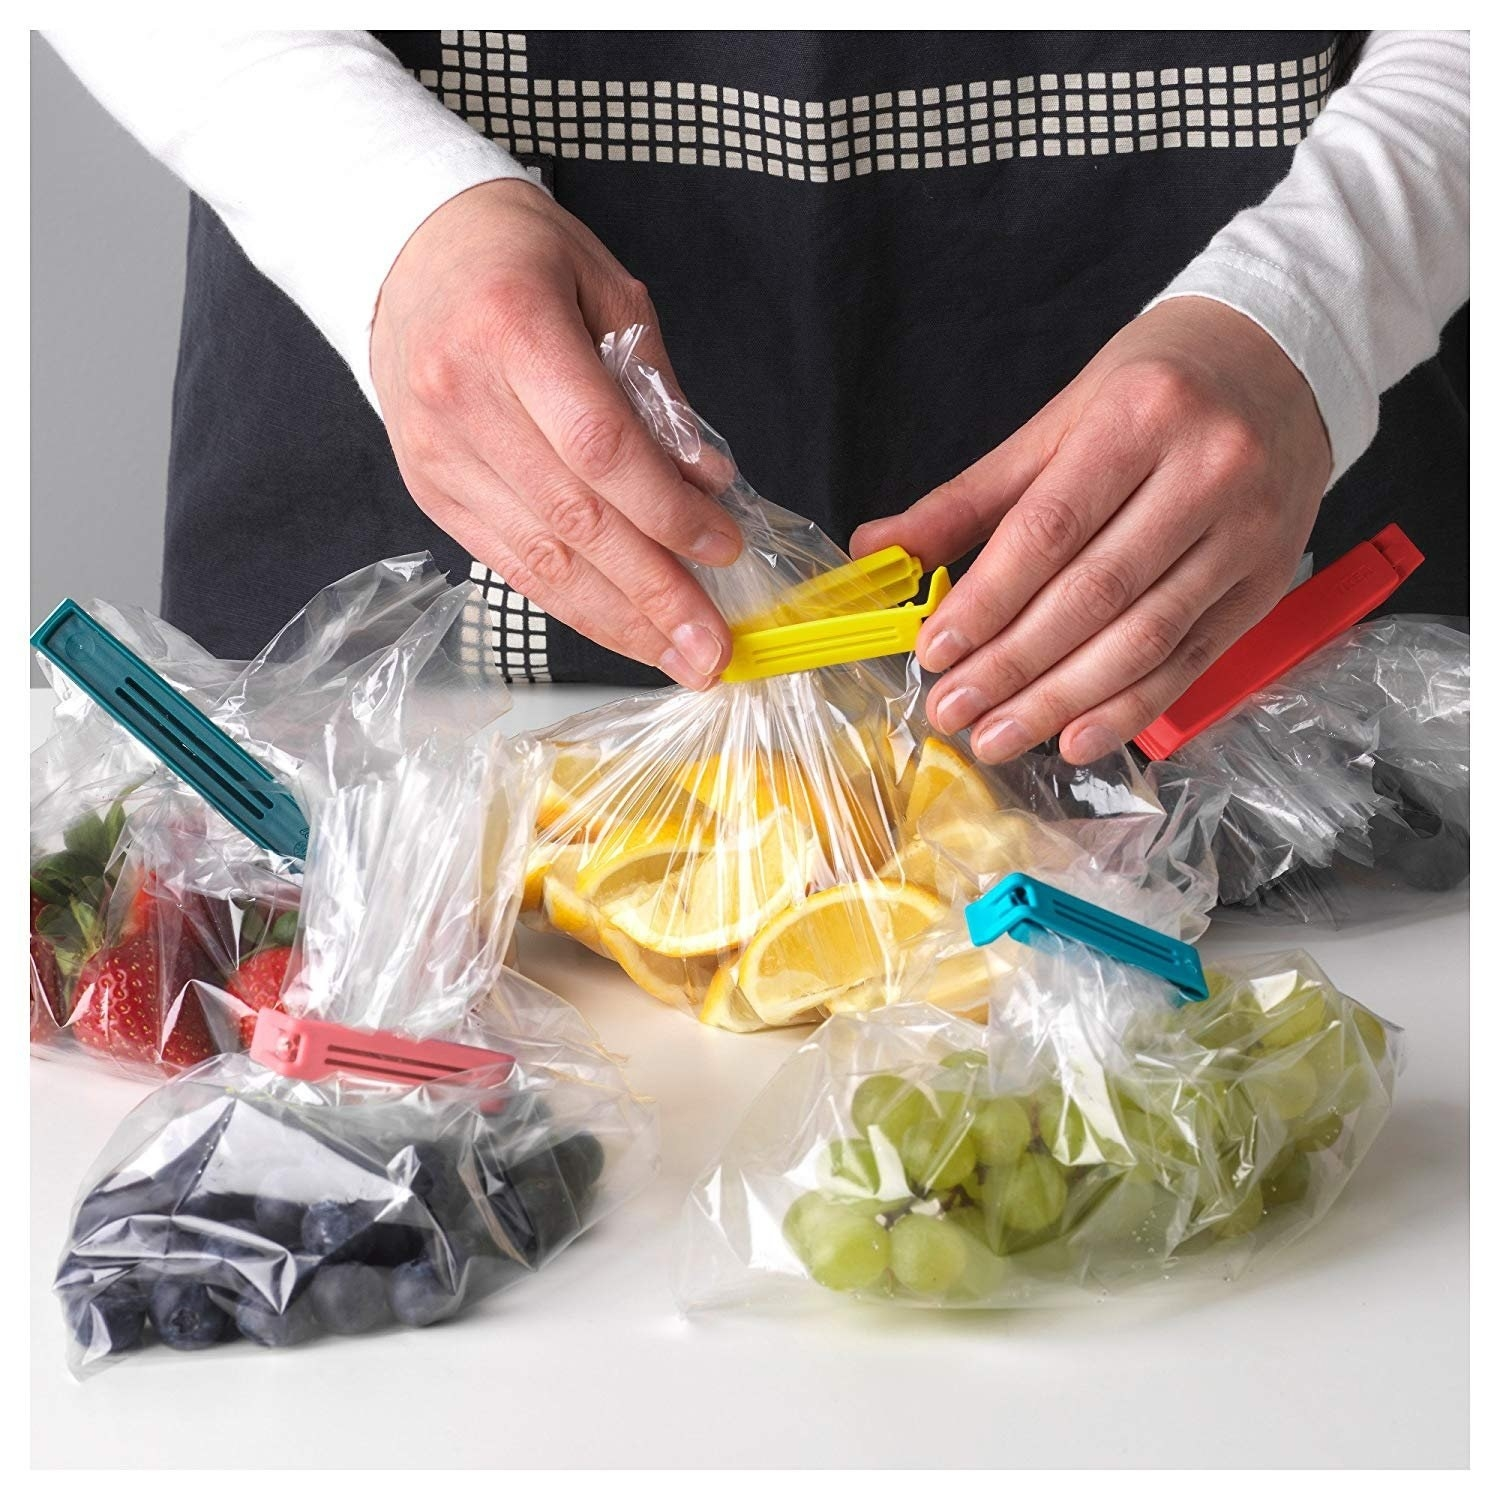 A person sealing different bags of fruit with the clips